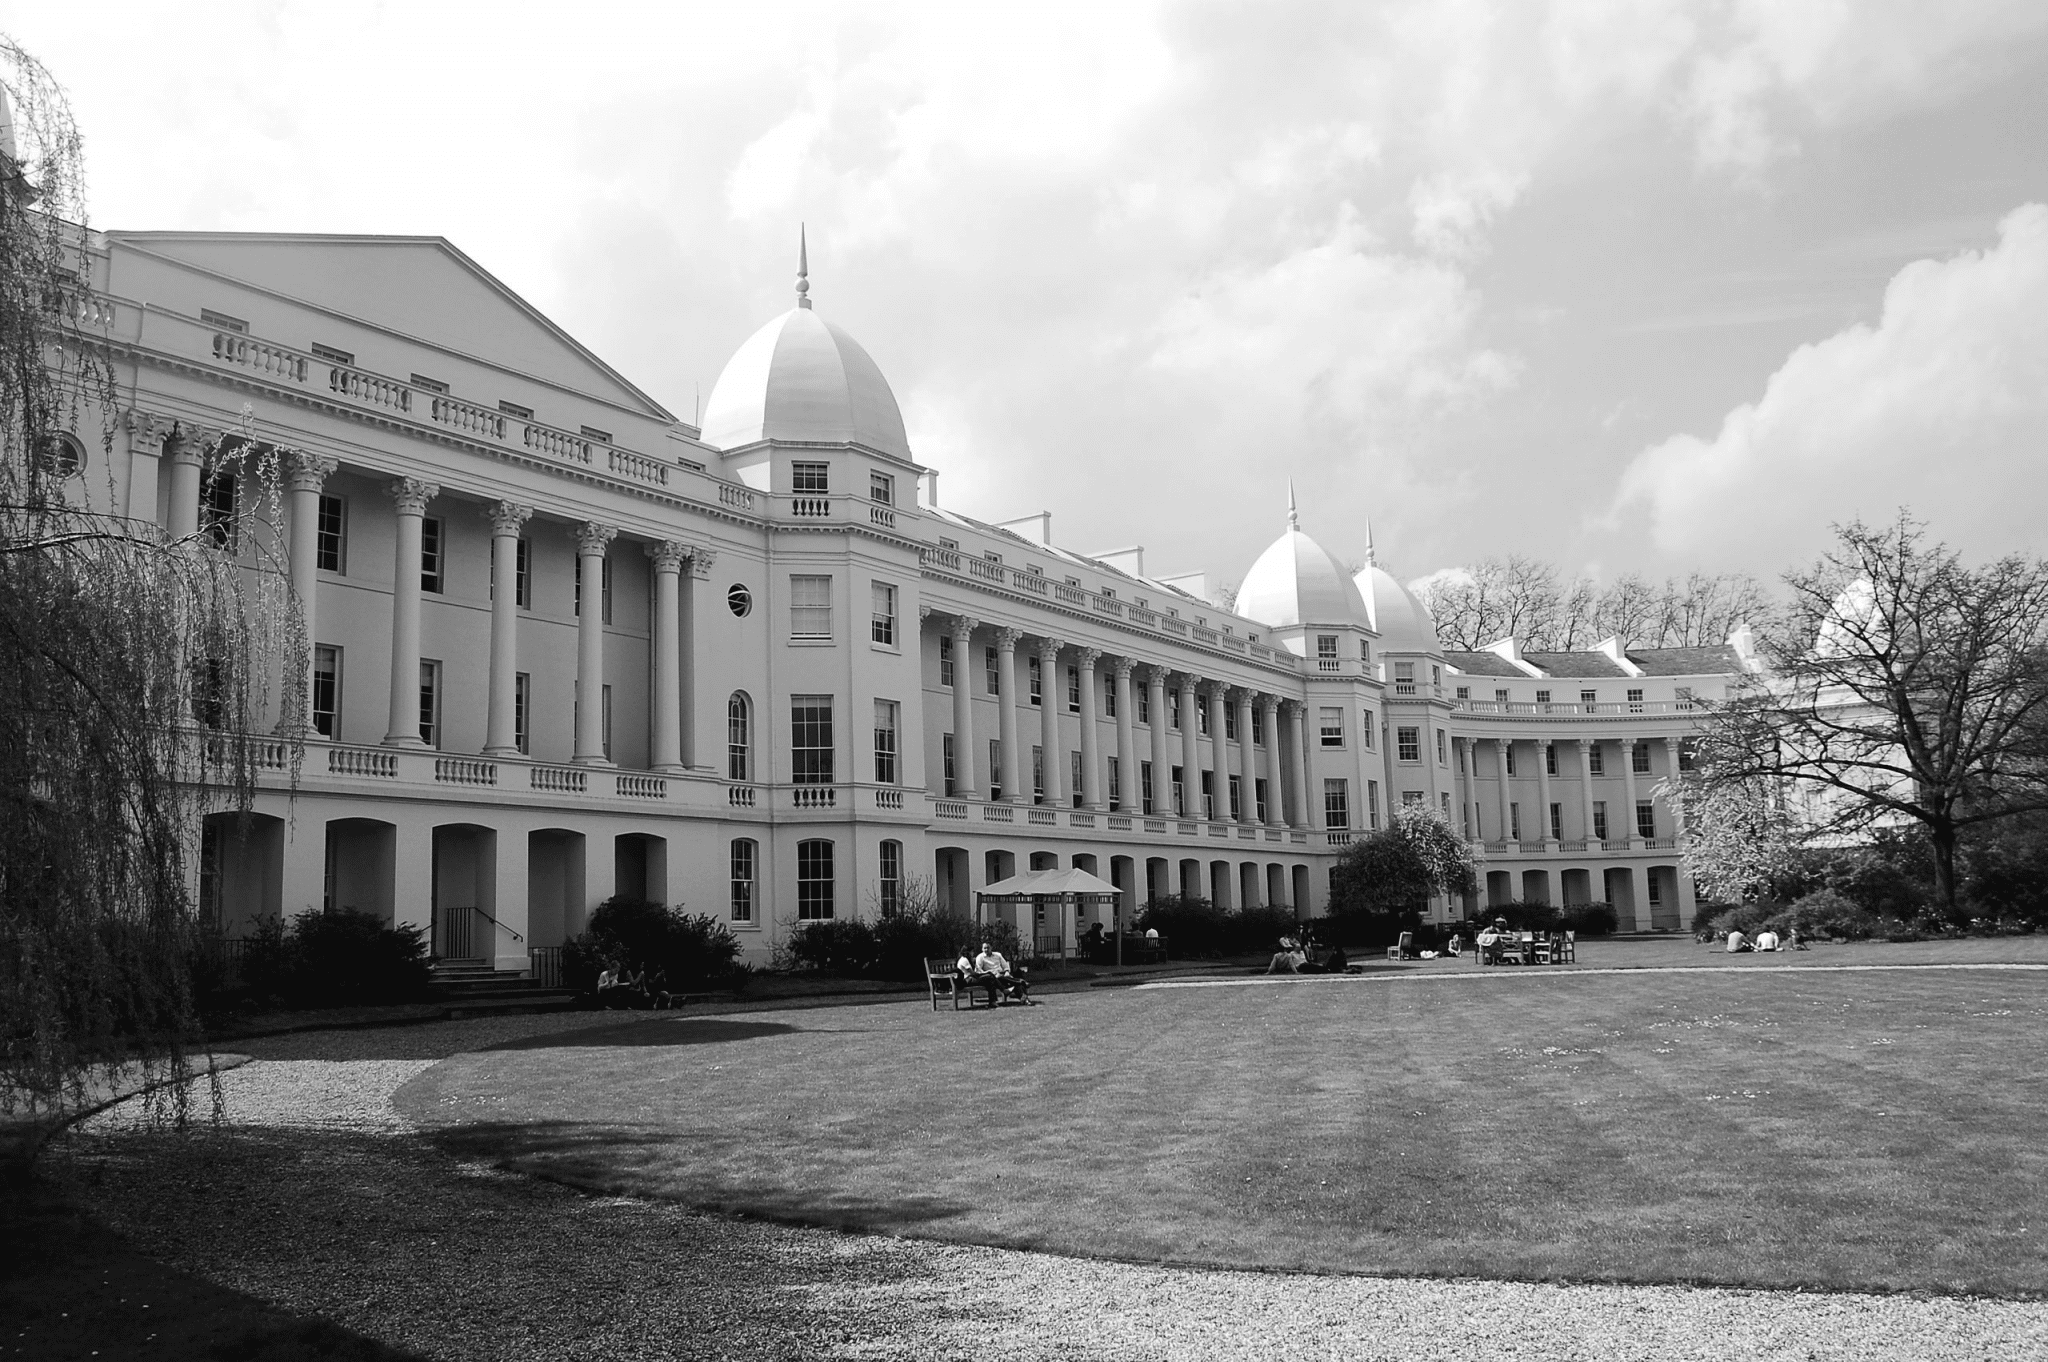 LBS Campus